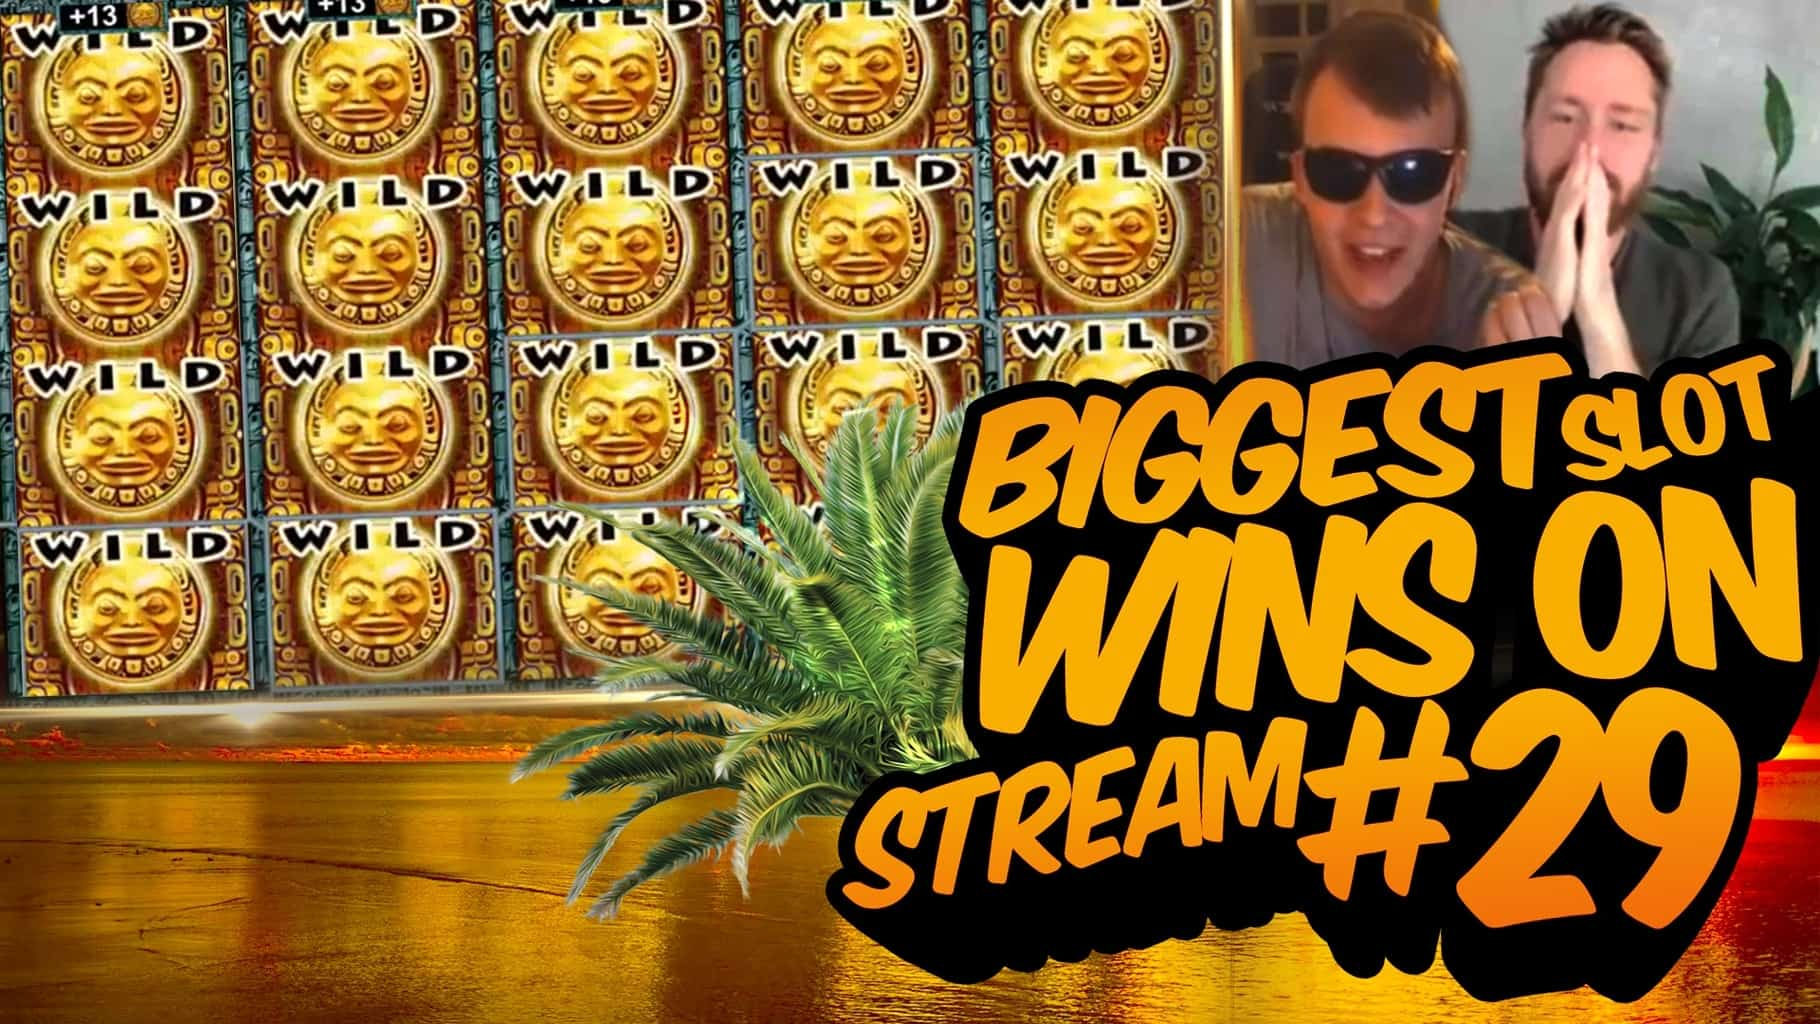 BIGGEST CASINO WINS ON STREAM – WEEK 29 / 2017